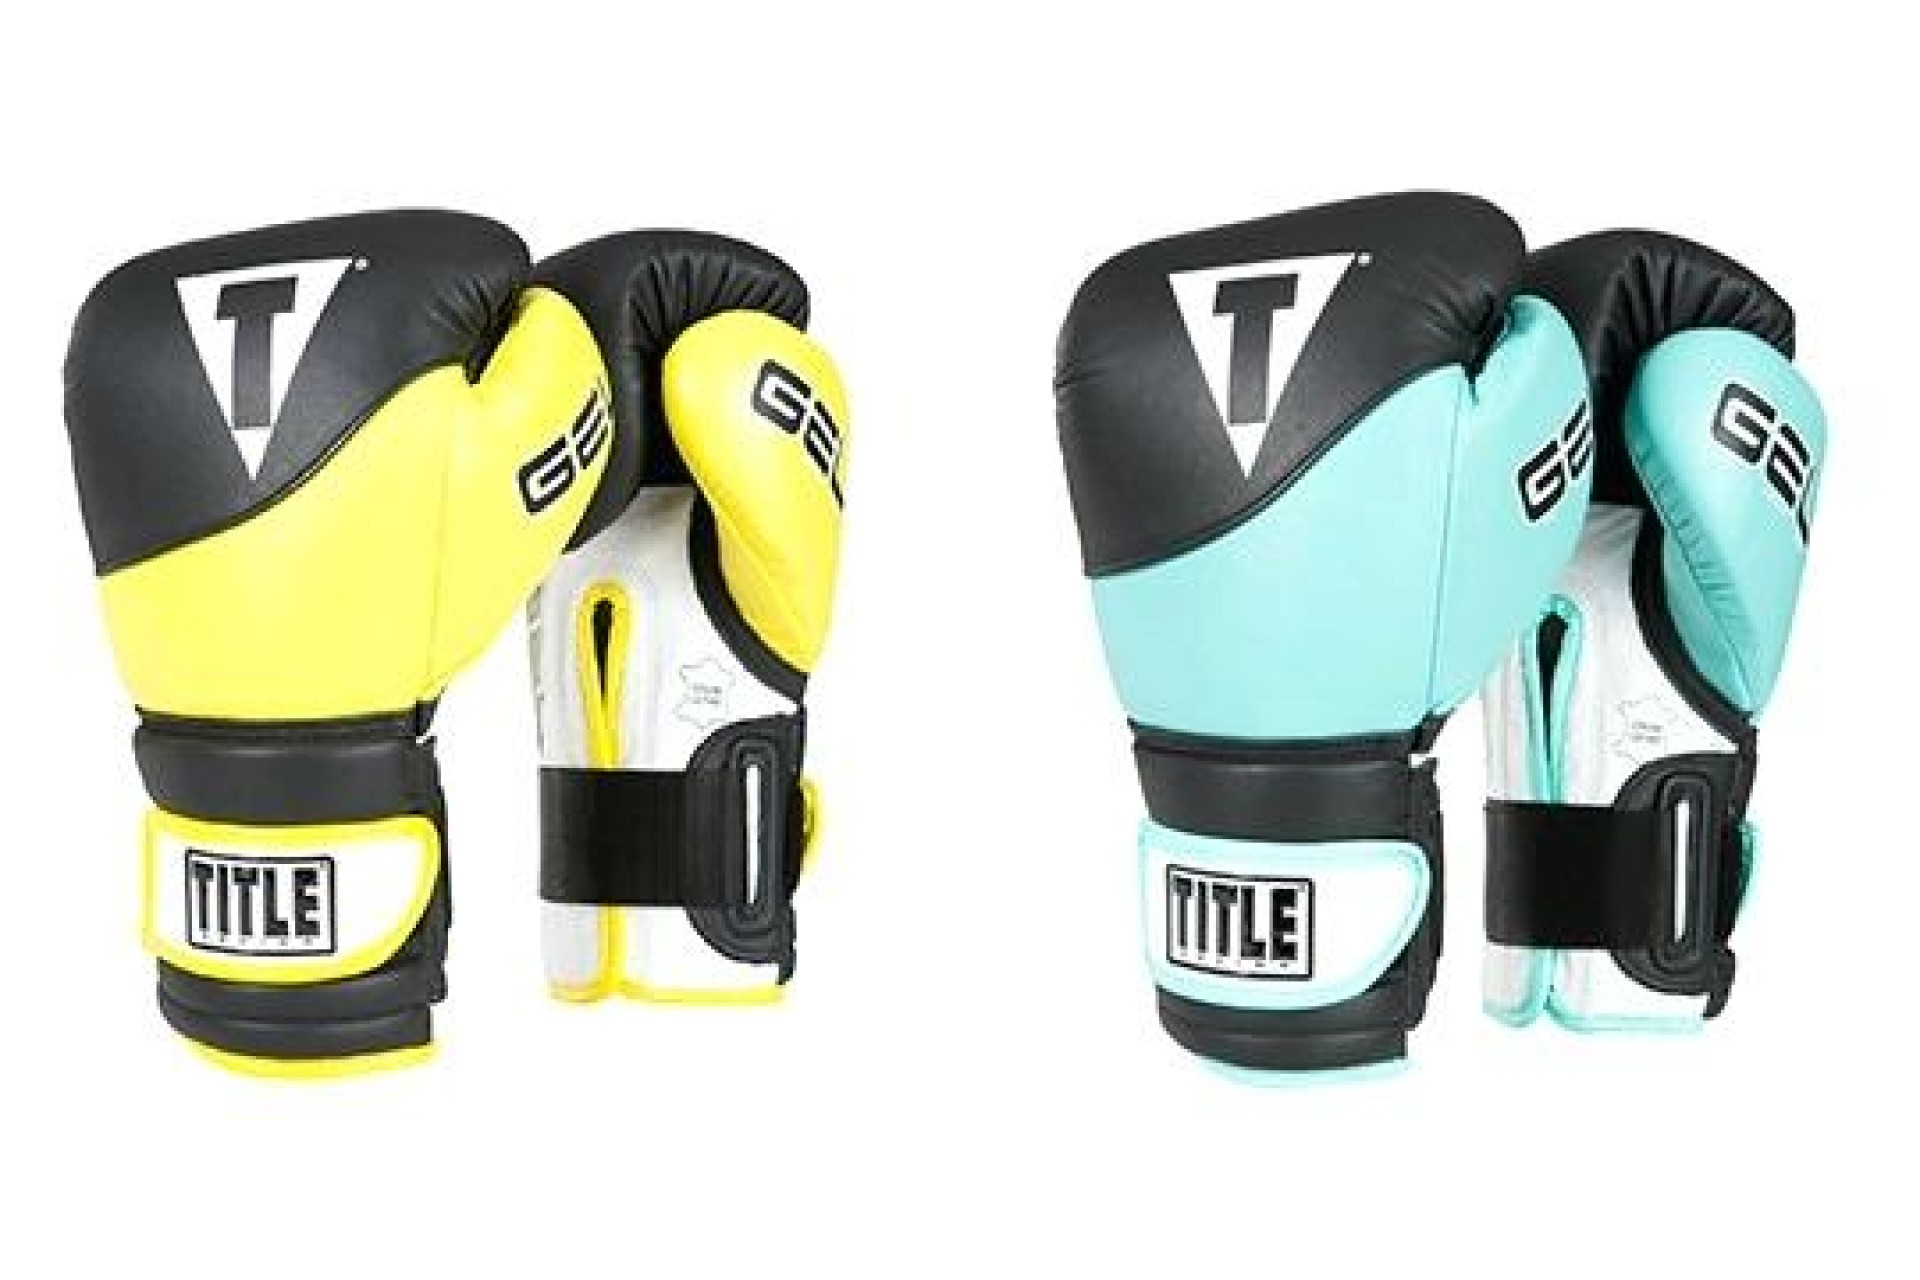 a7f30ffdd2766 Title Gel World Bag Gloves Review - Boxing Is On